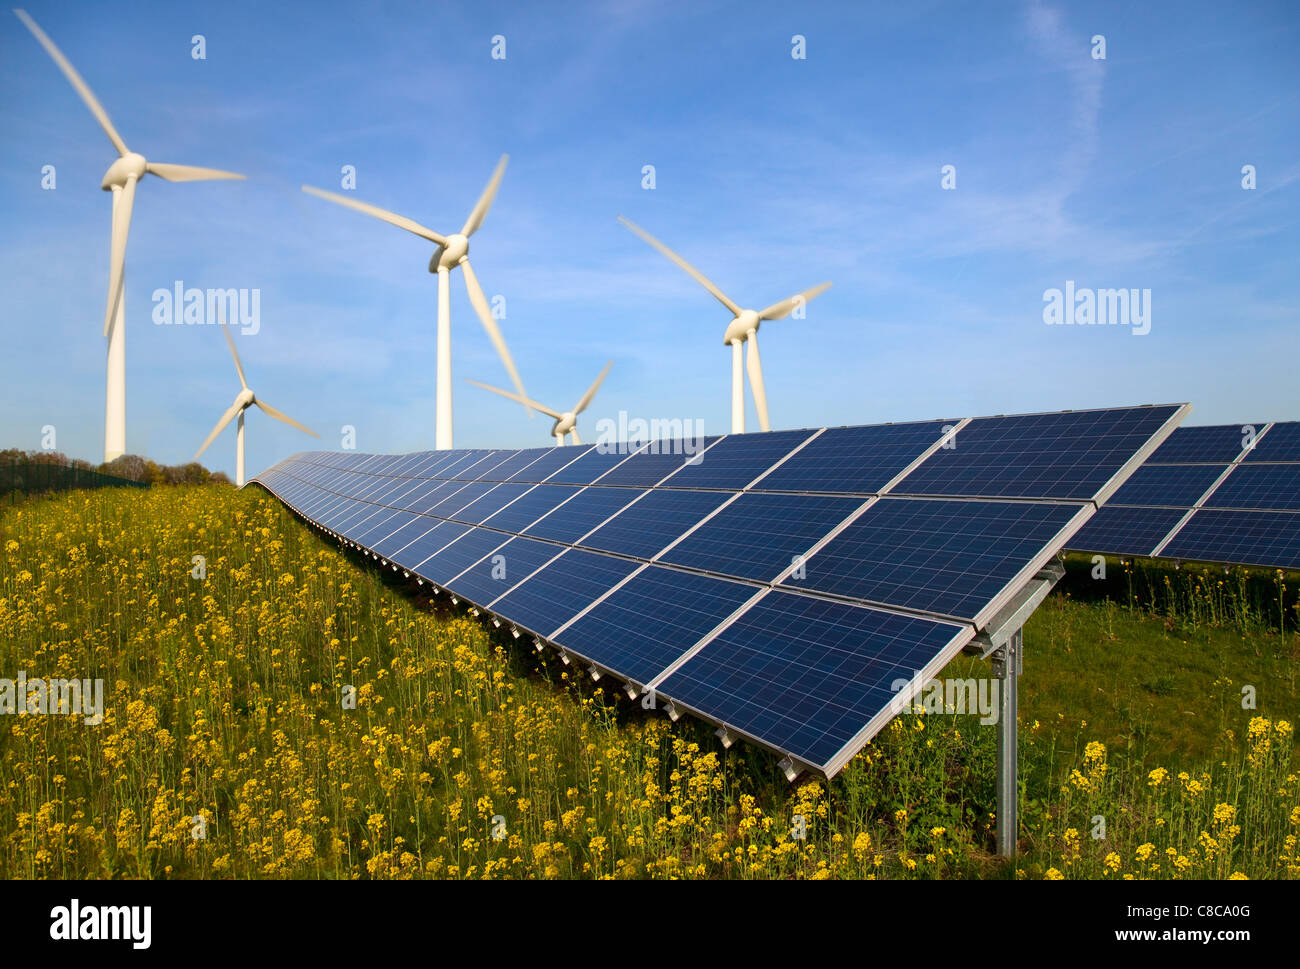 Solar panels and wind turbines in field - Stock Image